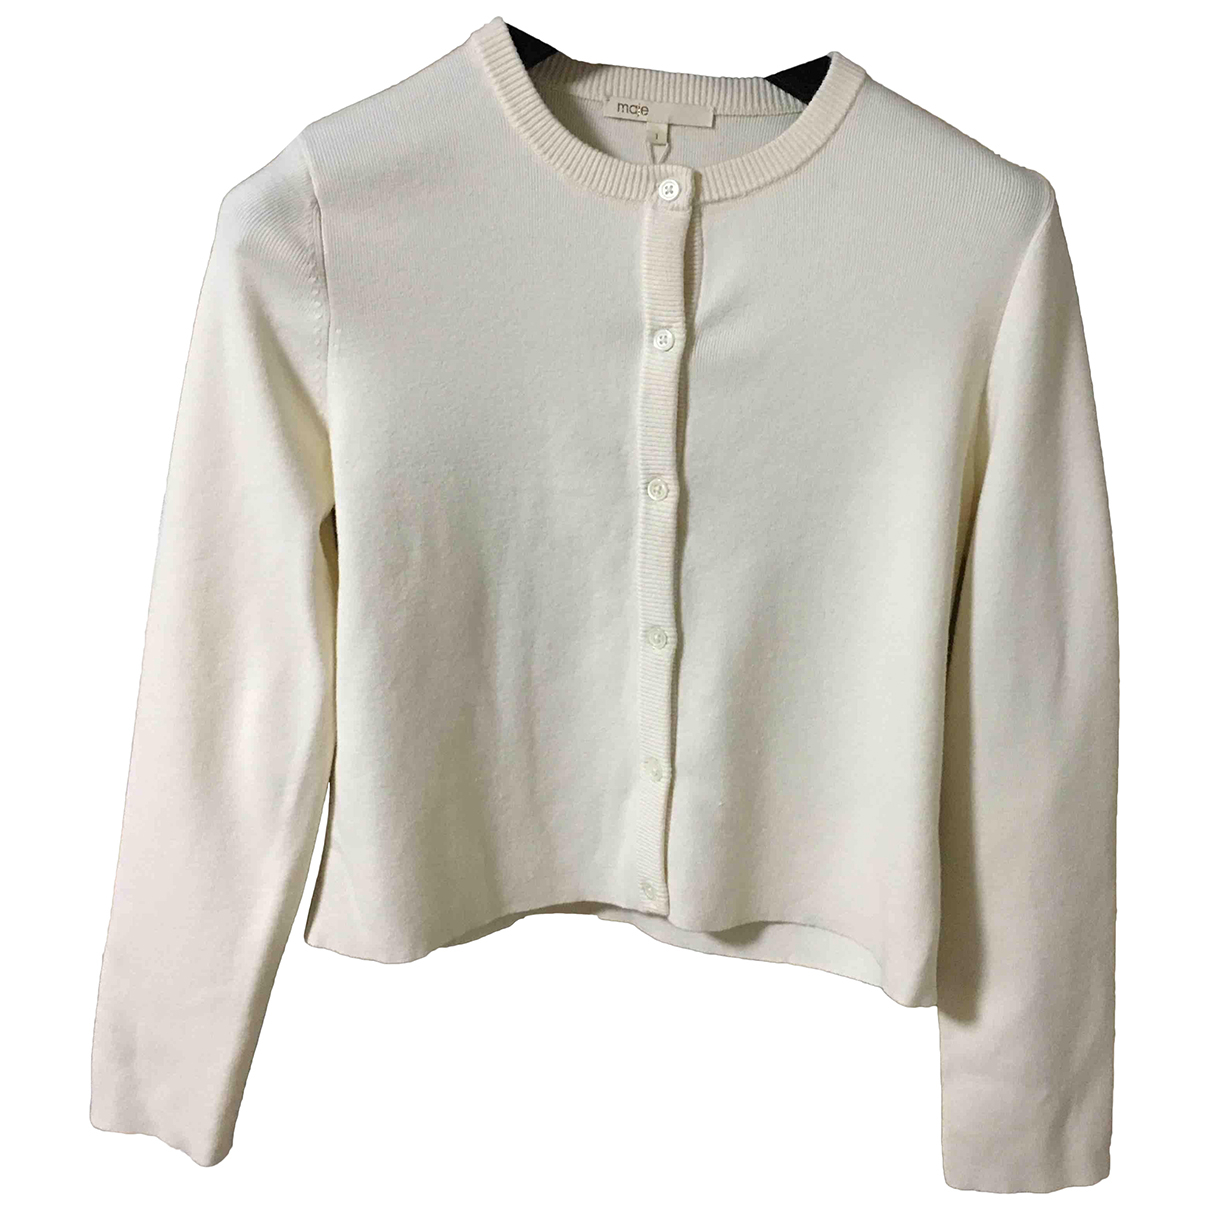 Maje N Ecru Cotton Knitwear for Women 8 UK